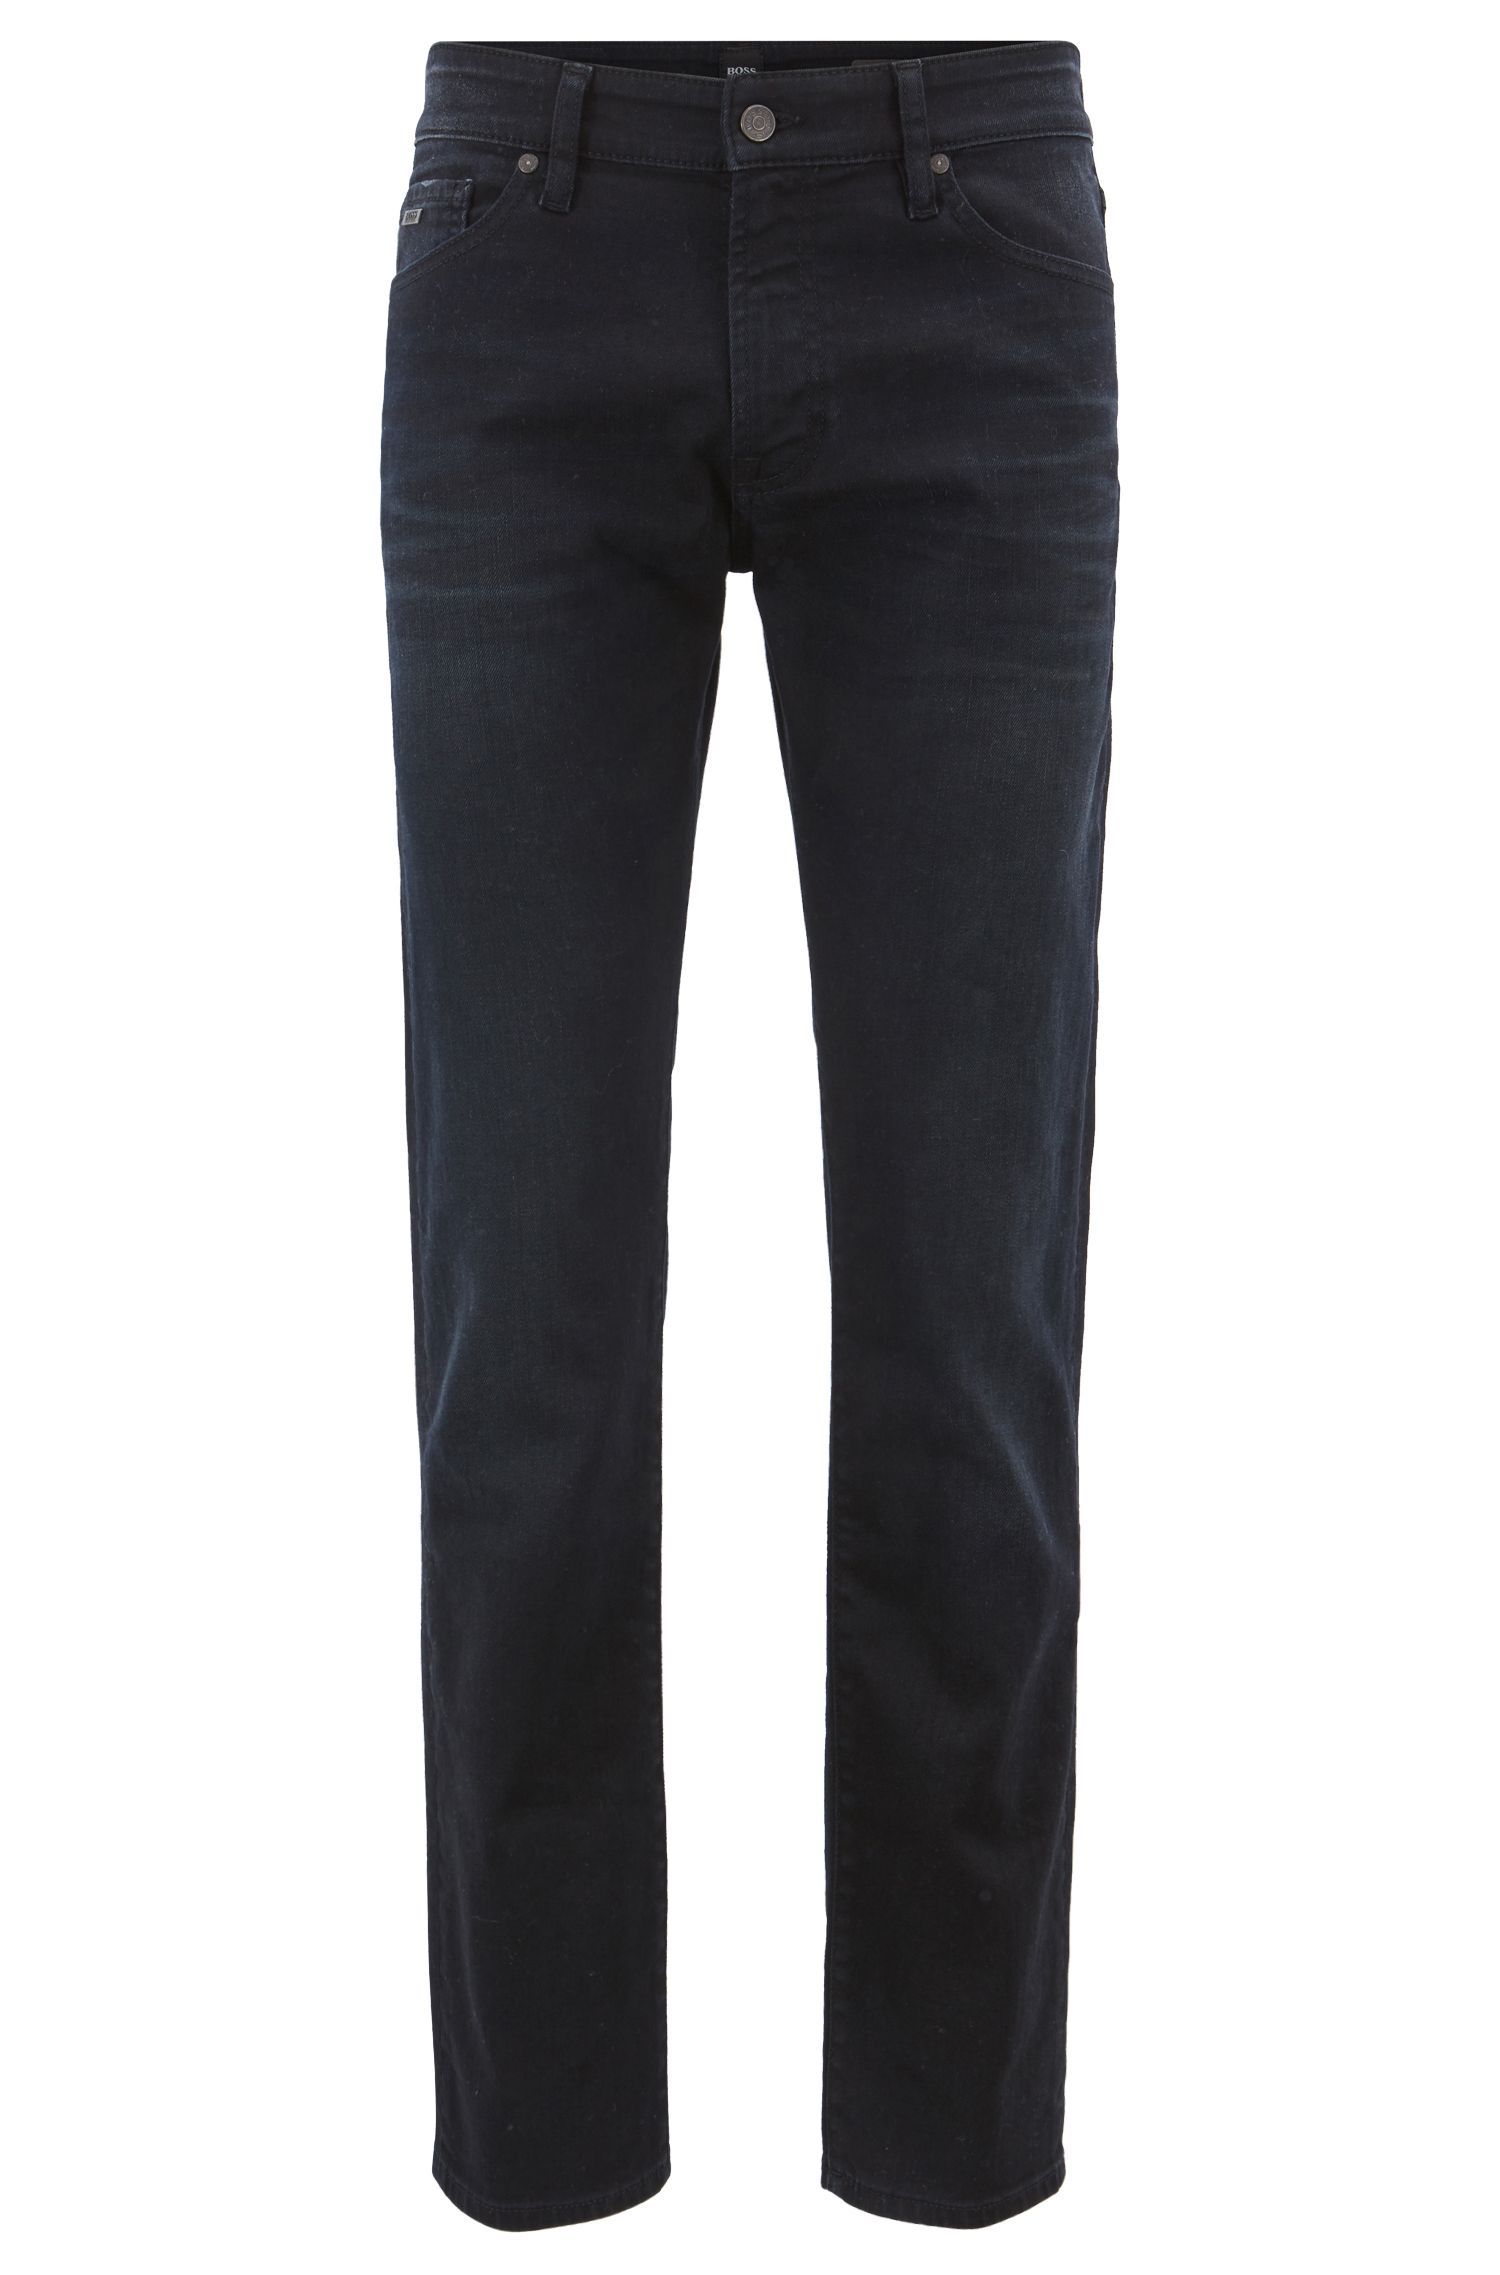 Jean Regular Fit en denim stretch indigo surteint, Bleu foncé